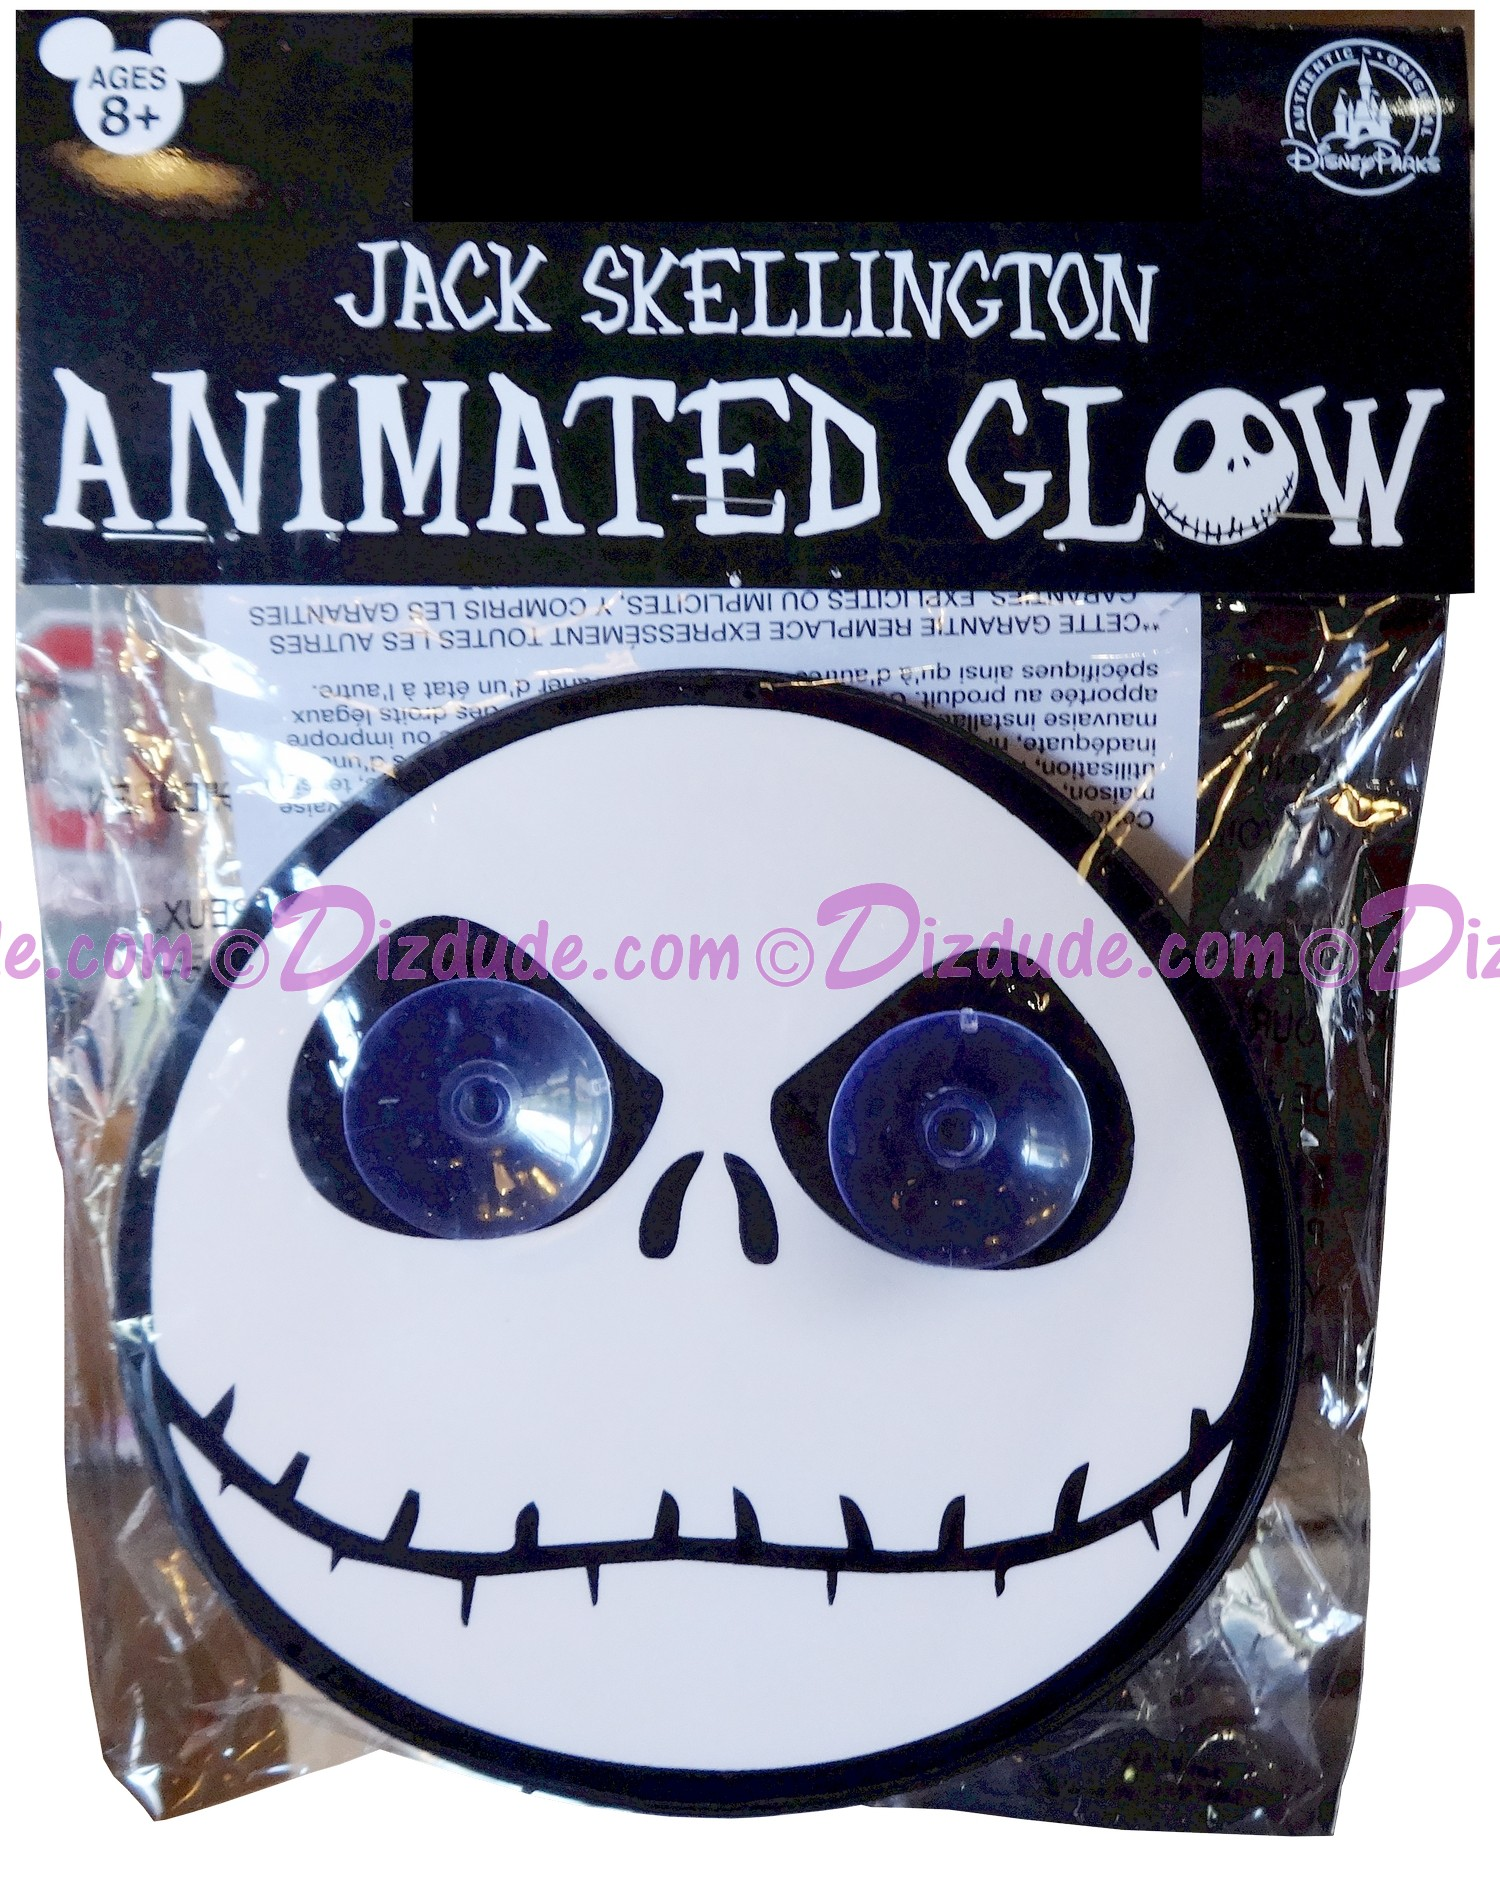 disney the nightmare before christmas jack skellington animated glow window decoration dizdudecom